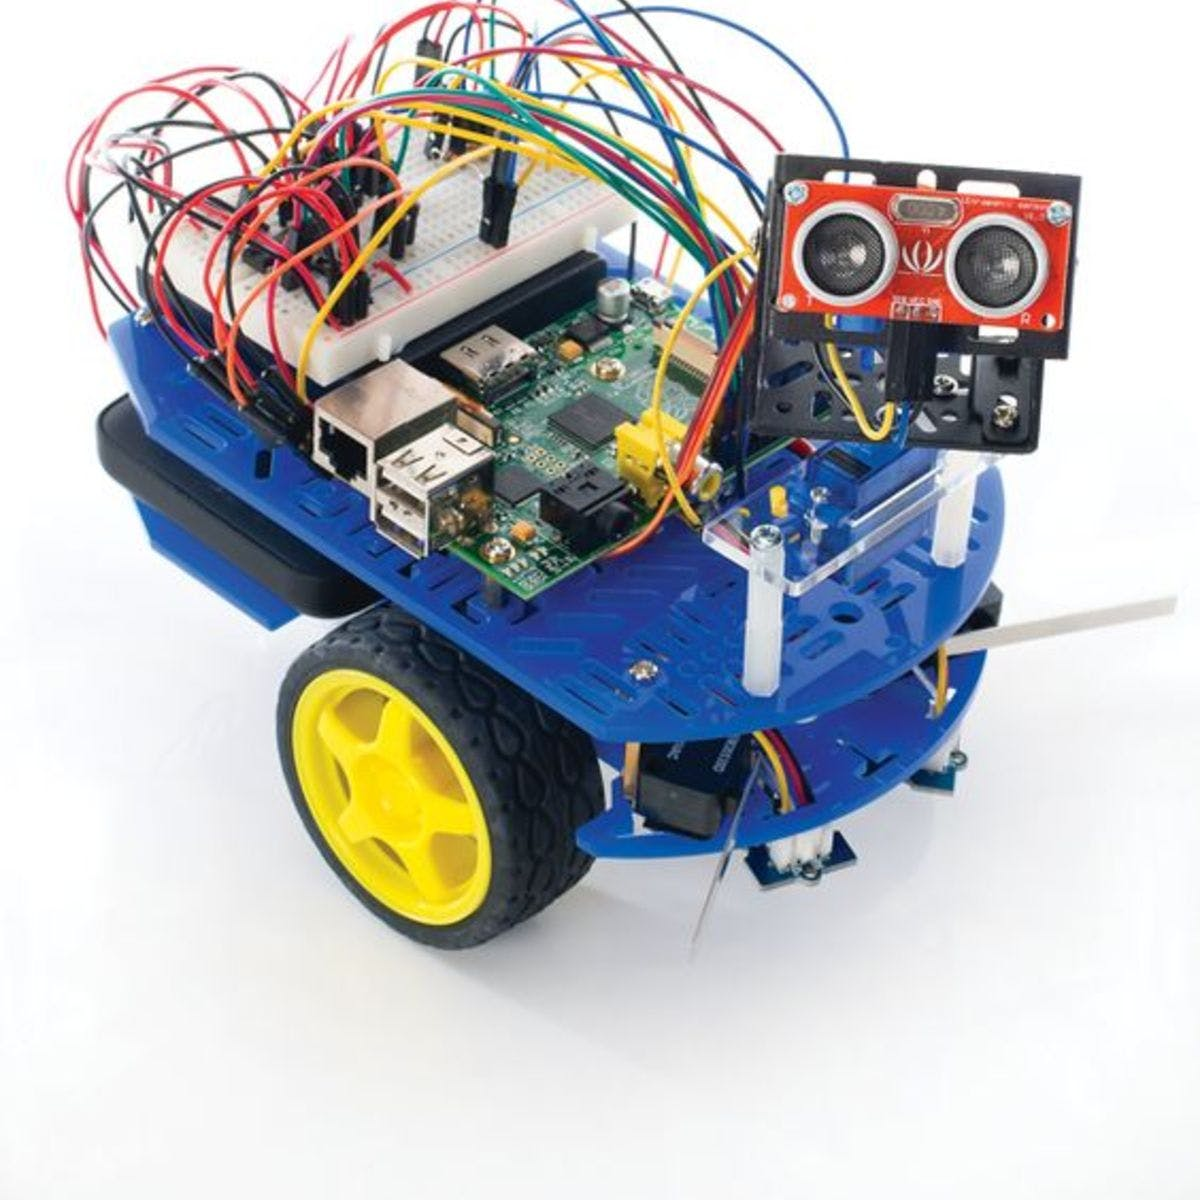 Building Arduino robots and devices